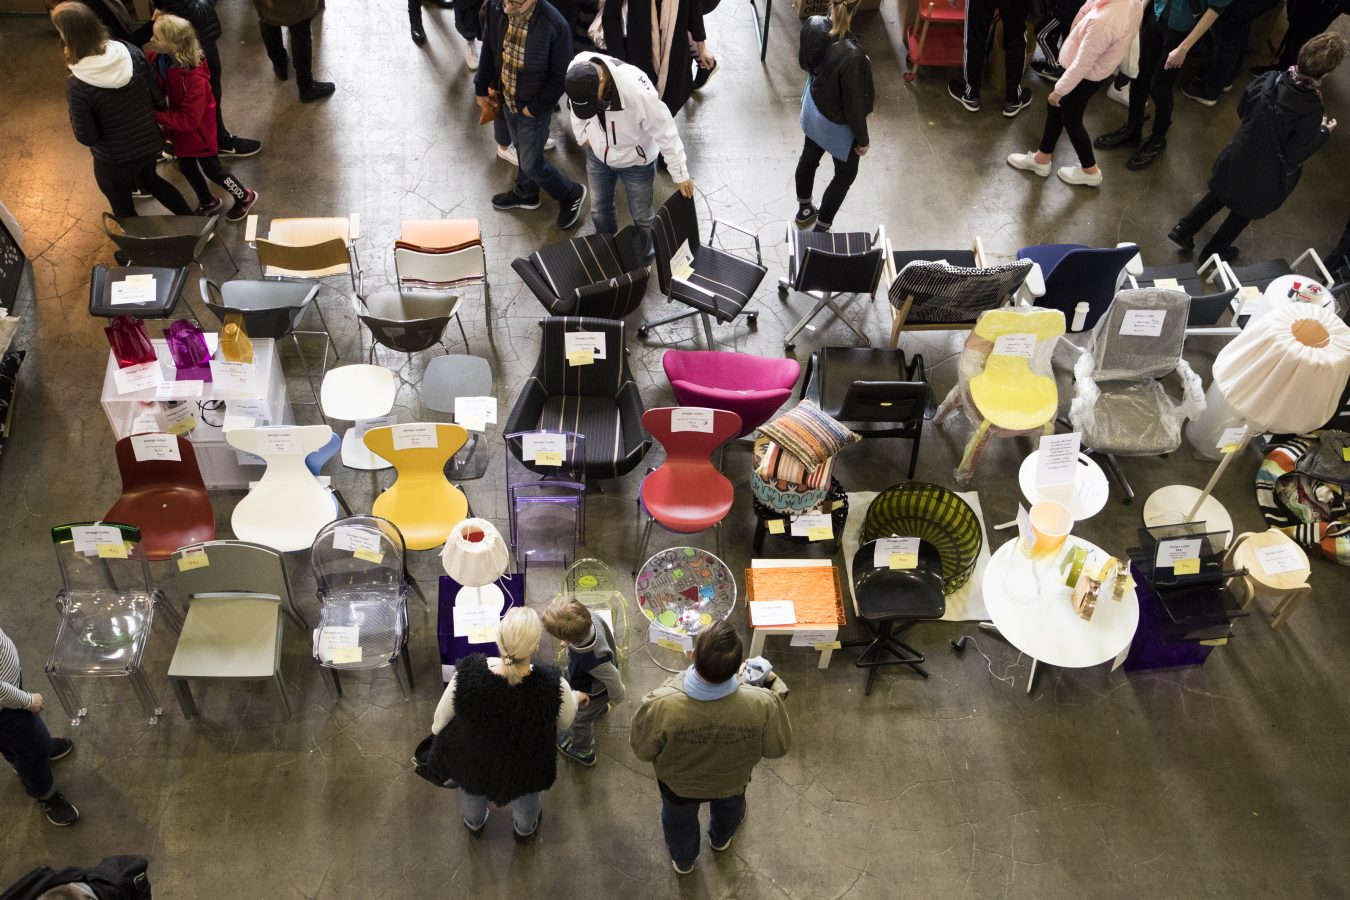 Helsinki Design Week 2019 Event Guide helsinki design week 2019 event guide HELSINKI DESIGN WEEK 2019 EVENT GUIDE HDW2017 DesignMarket credit Iiris Heikka31 1350x900